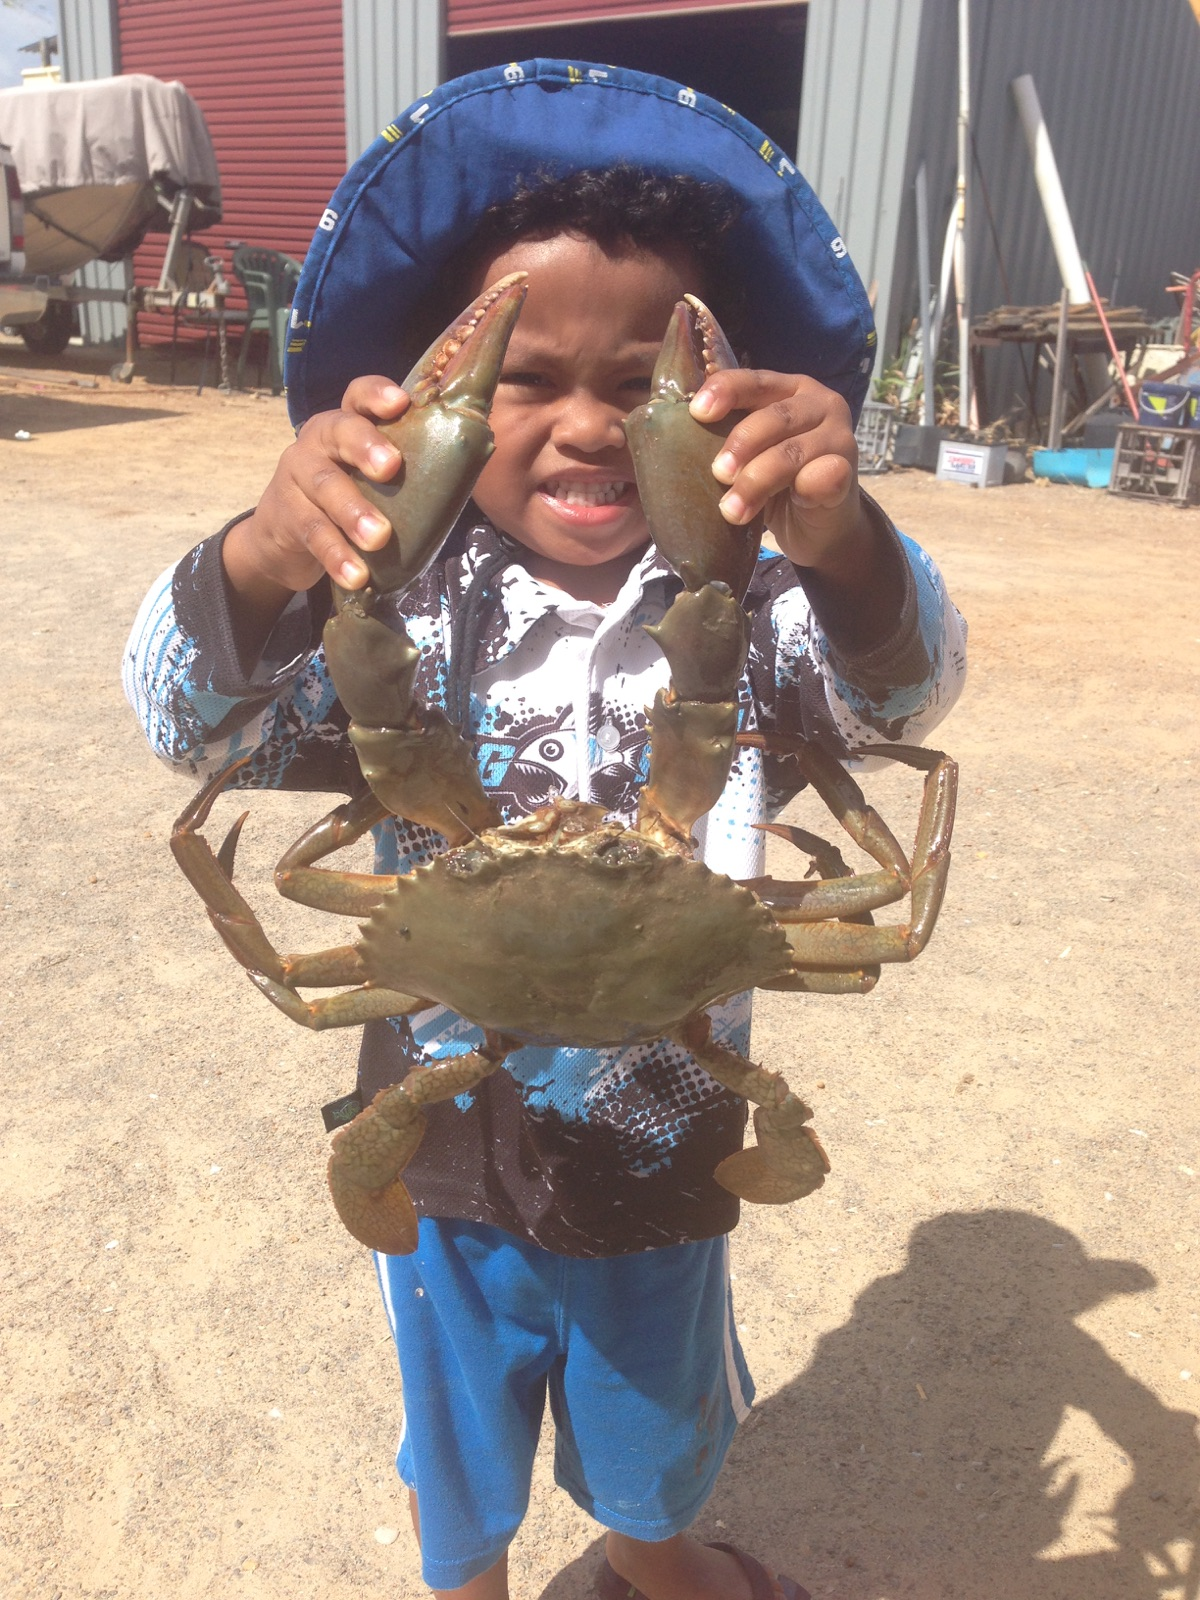 Serious Size Mudcrab - watch those fingers!